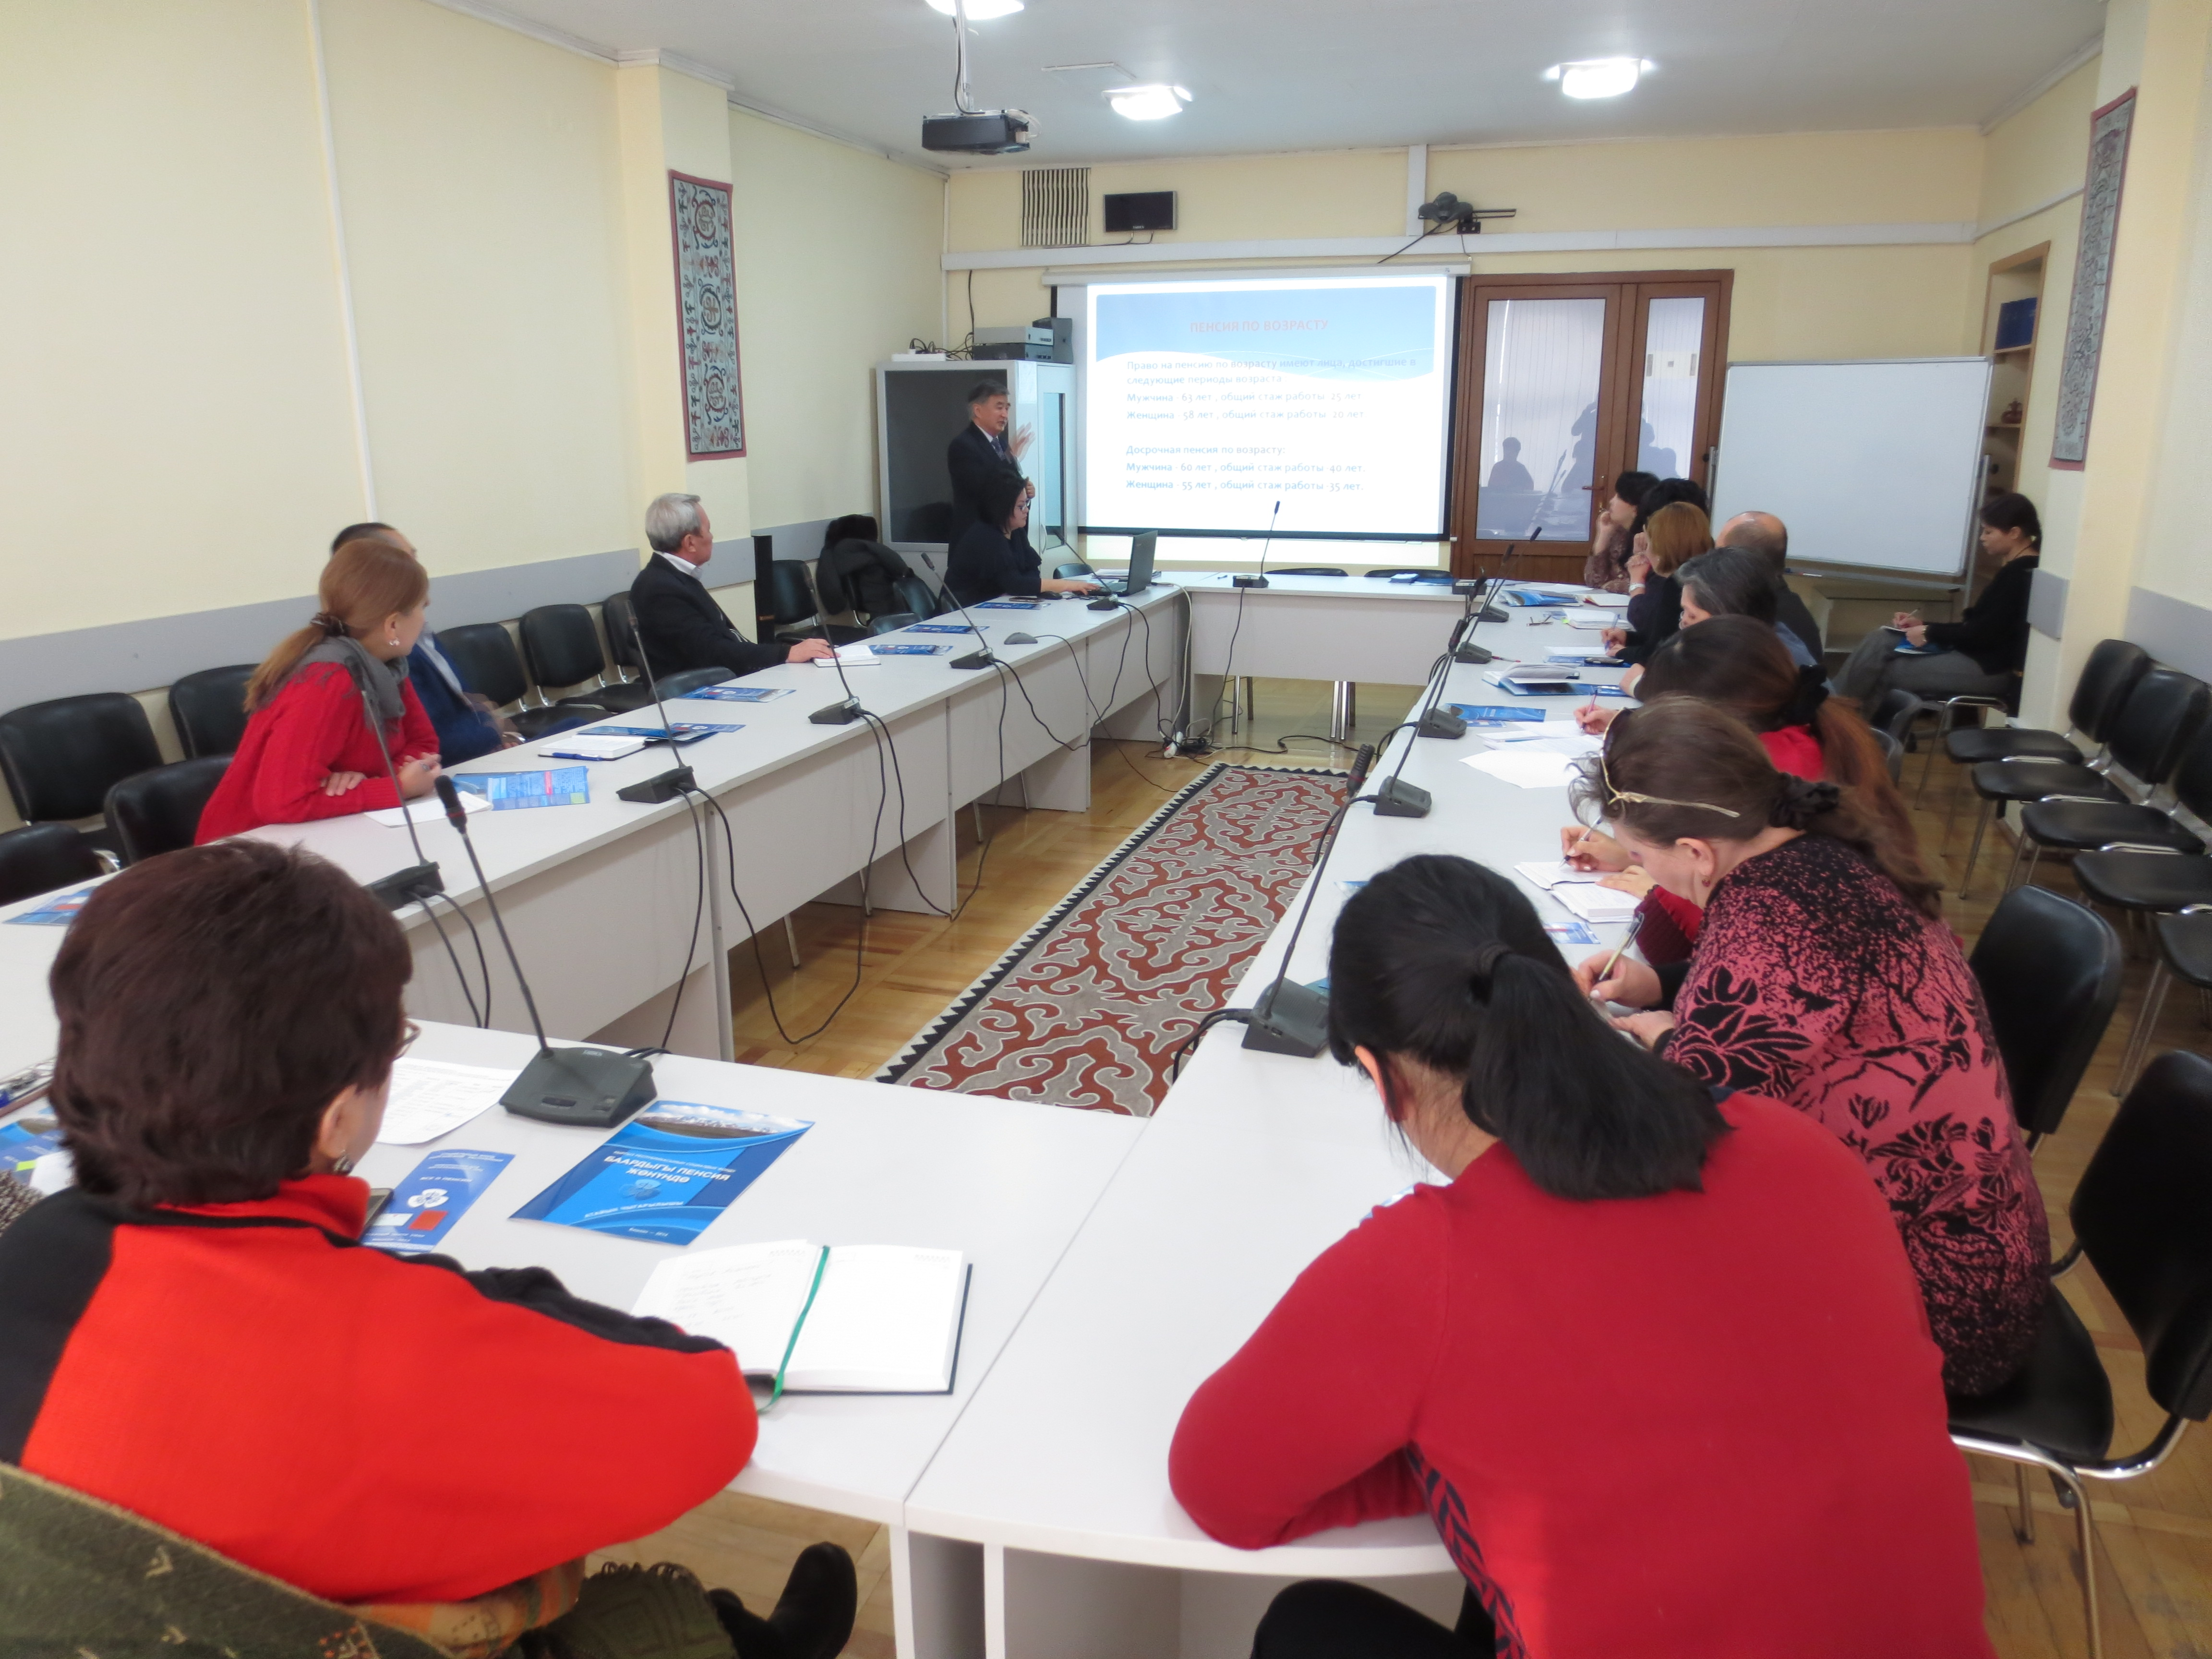 On January 23, 2018, the Training Center of the Ministry of Finance of the Kyrgyz Republic together with the Training Center of the Social Fund of the Kyrgyz Republic